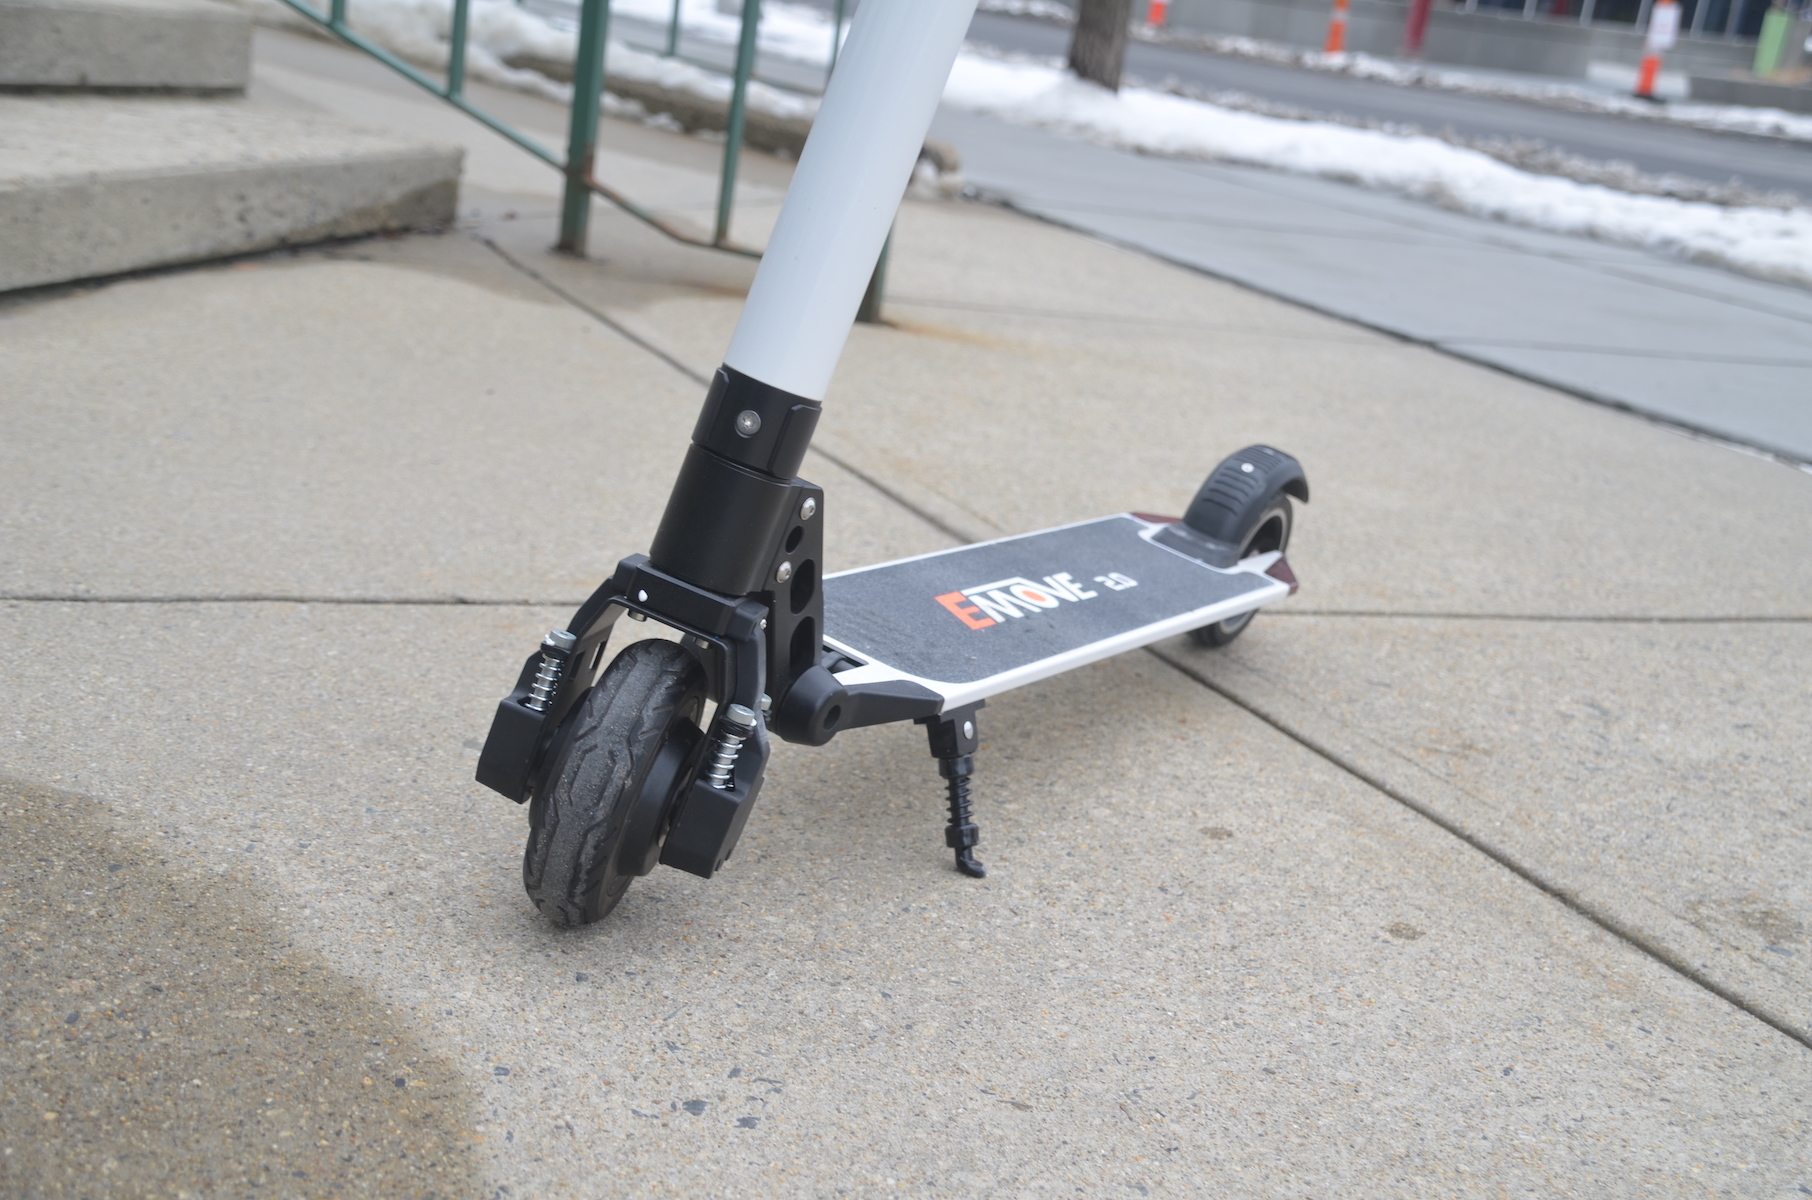 emove 2.0 electric scooter